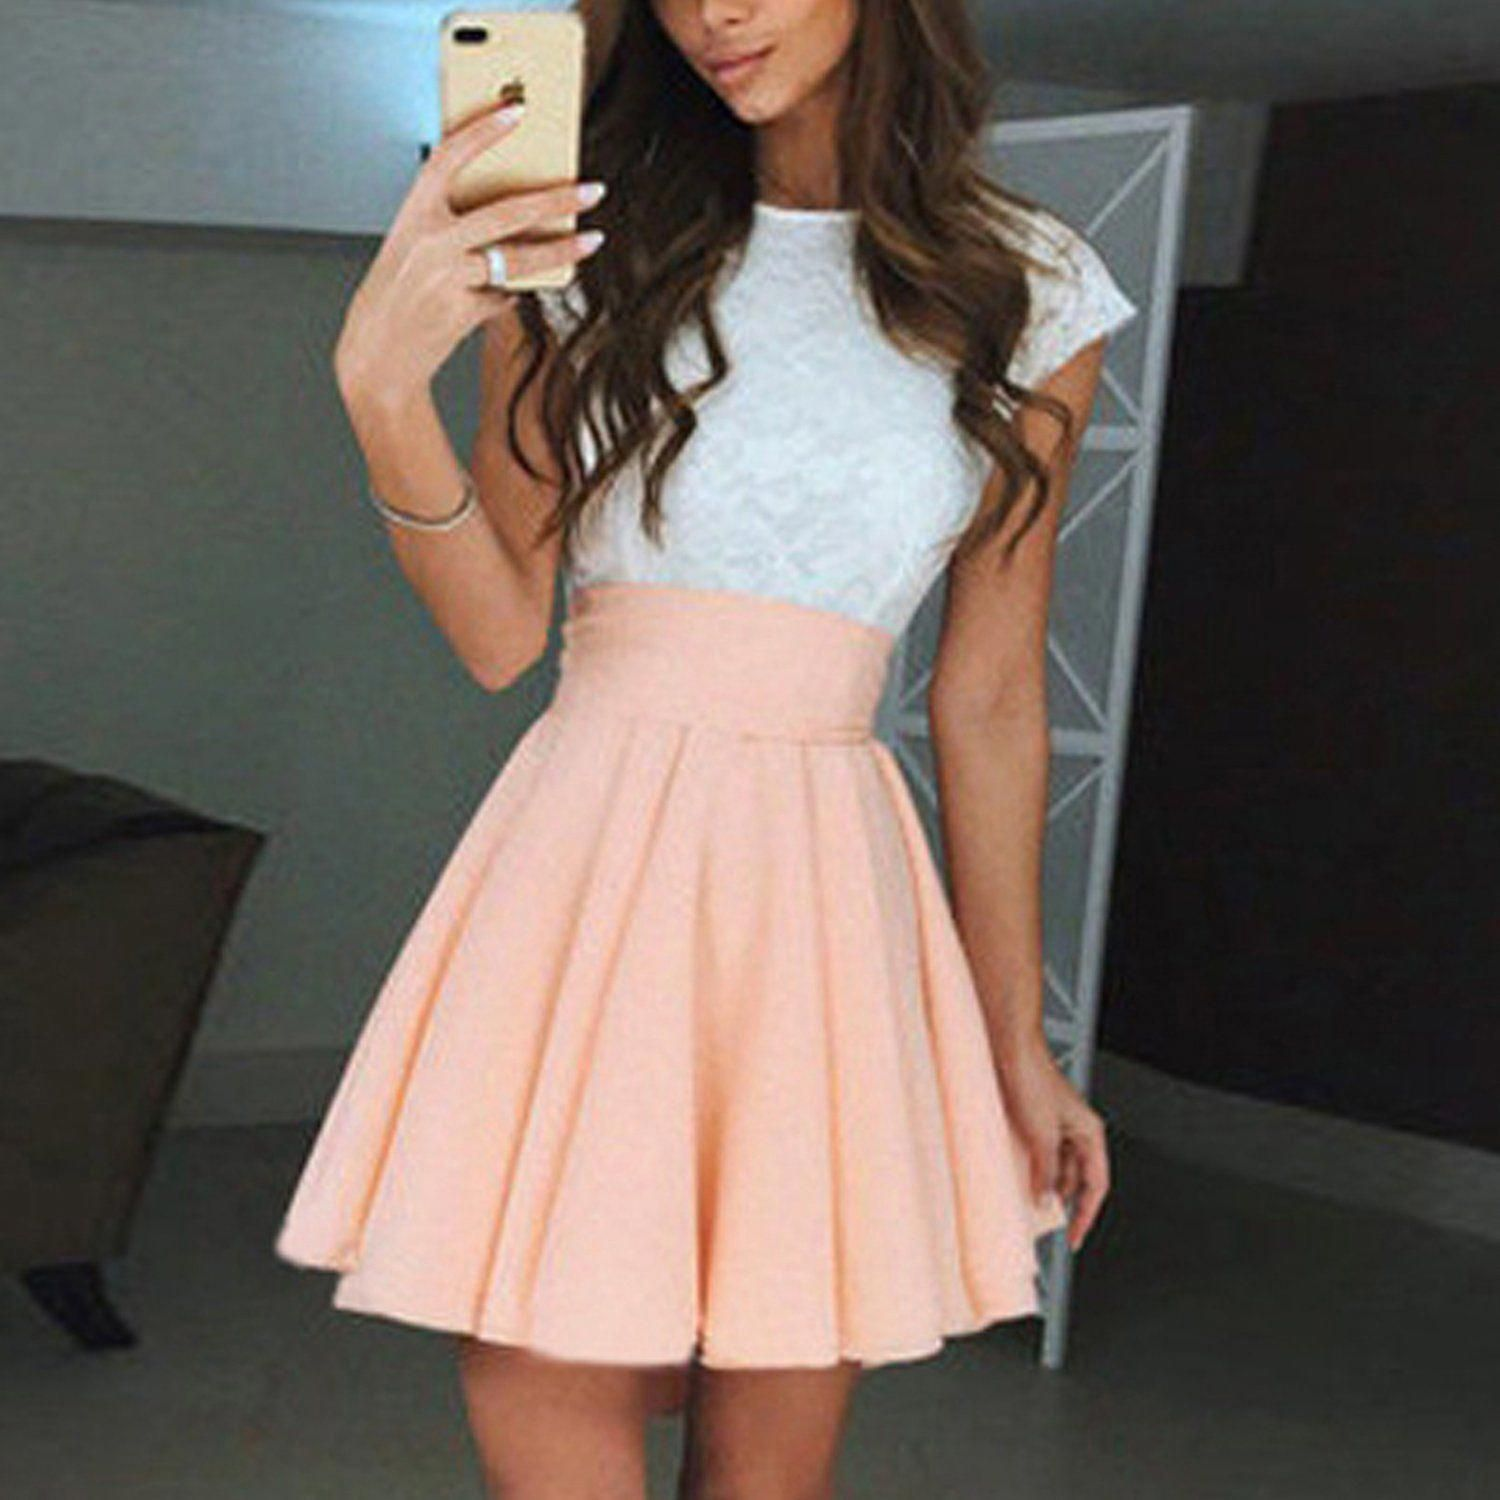 Formal Dresses For Teens 4 To 10 11 12 13 14 Years Old Kids Dressesforteensprom Pretty Dresses For Teens Skater Skirt Outfit Lace Skater Dress [ 1500 x 1500 Pixel ]